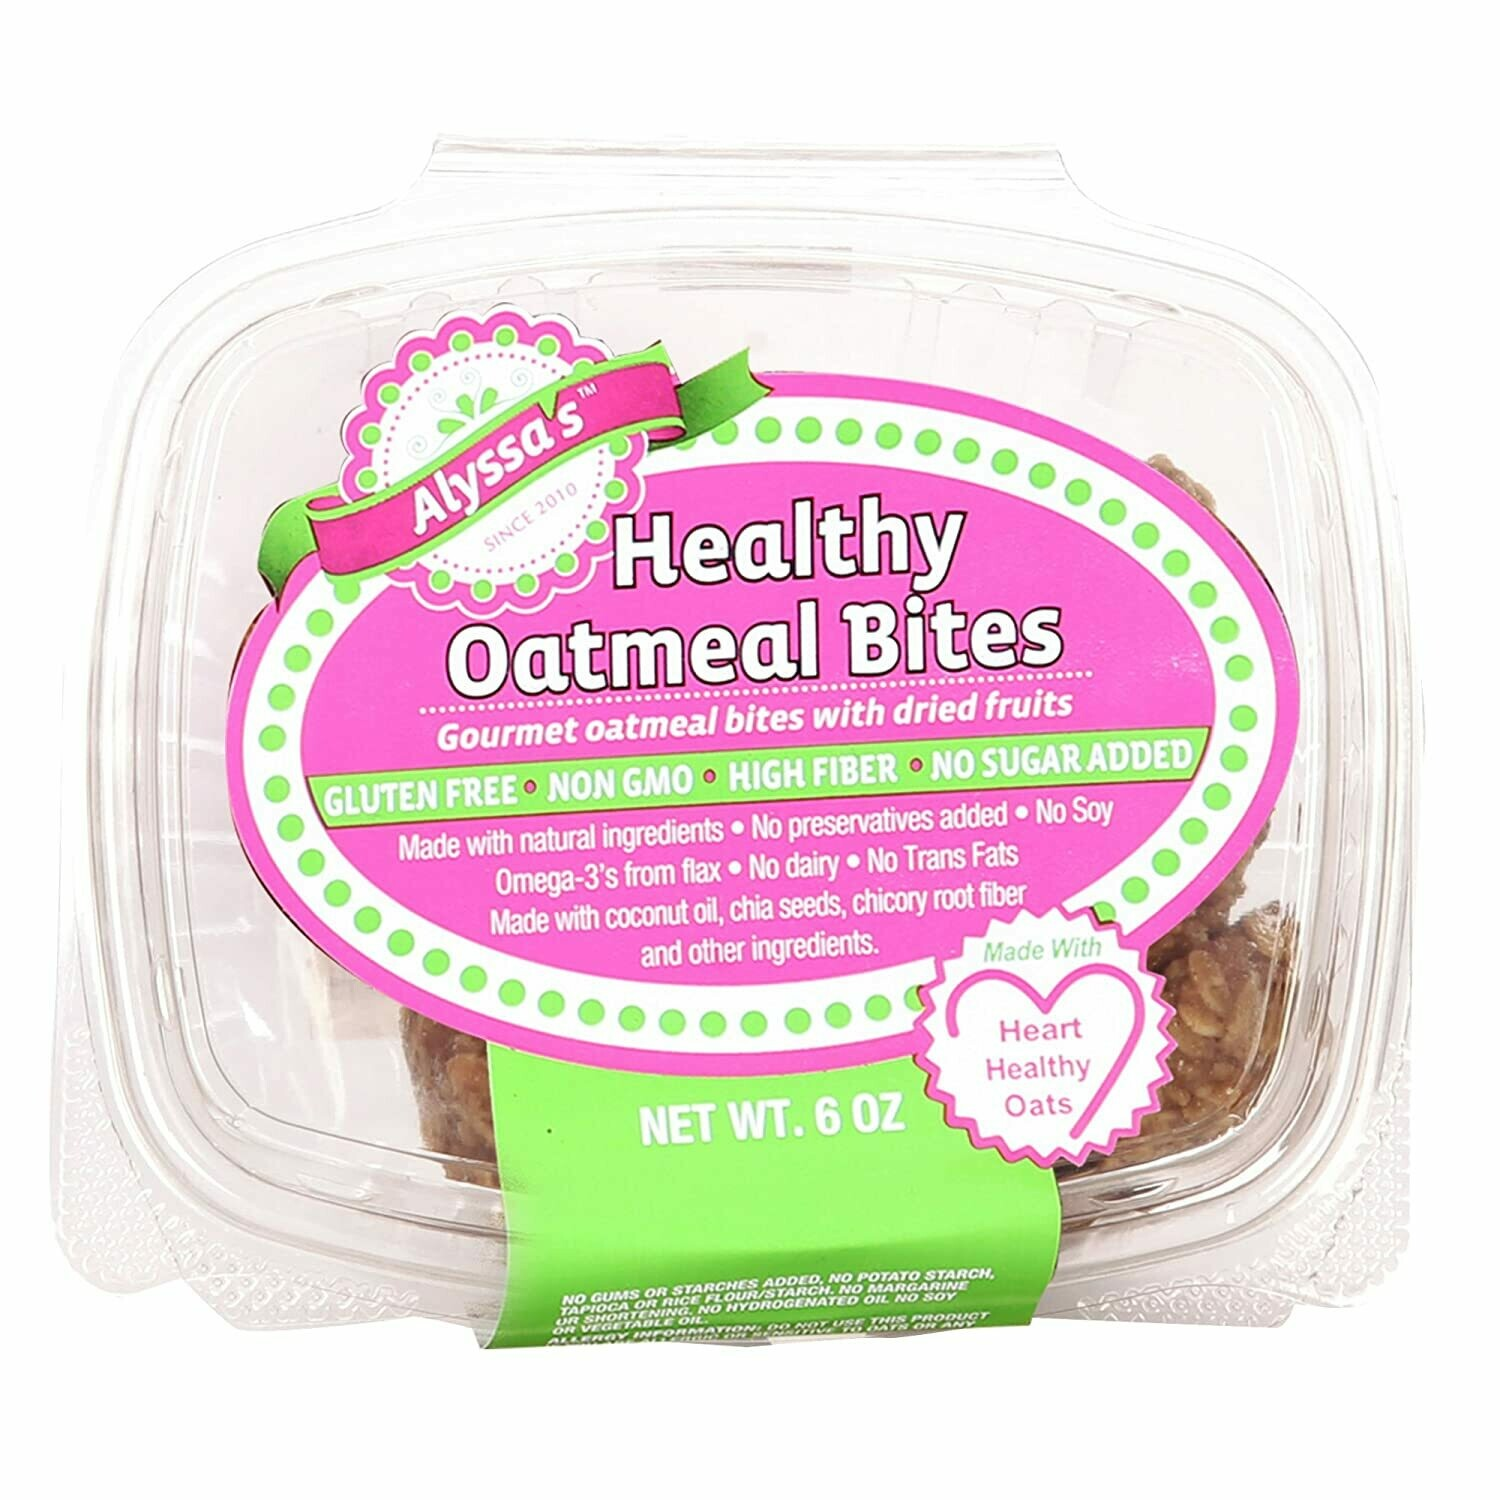 Alyssa's Healthy Oatmeal Bites (8 ct.)